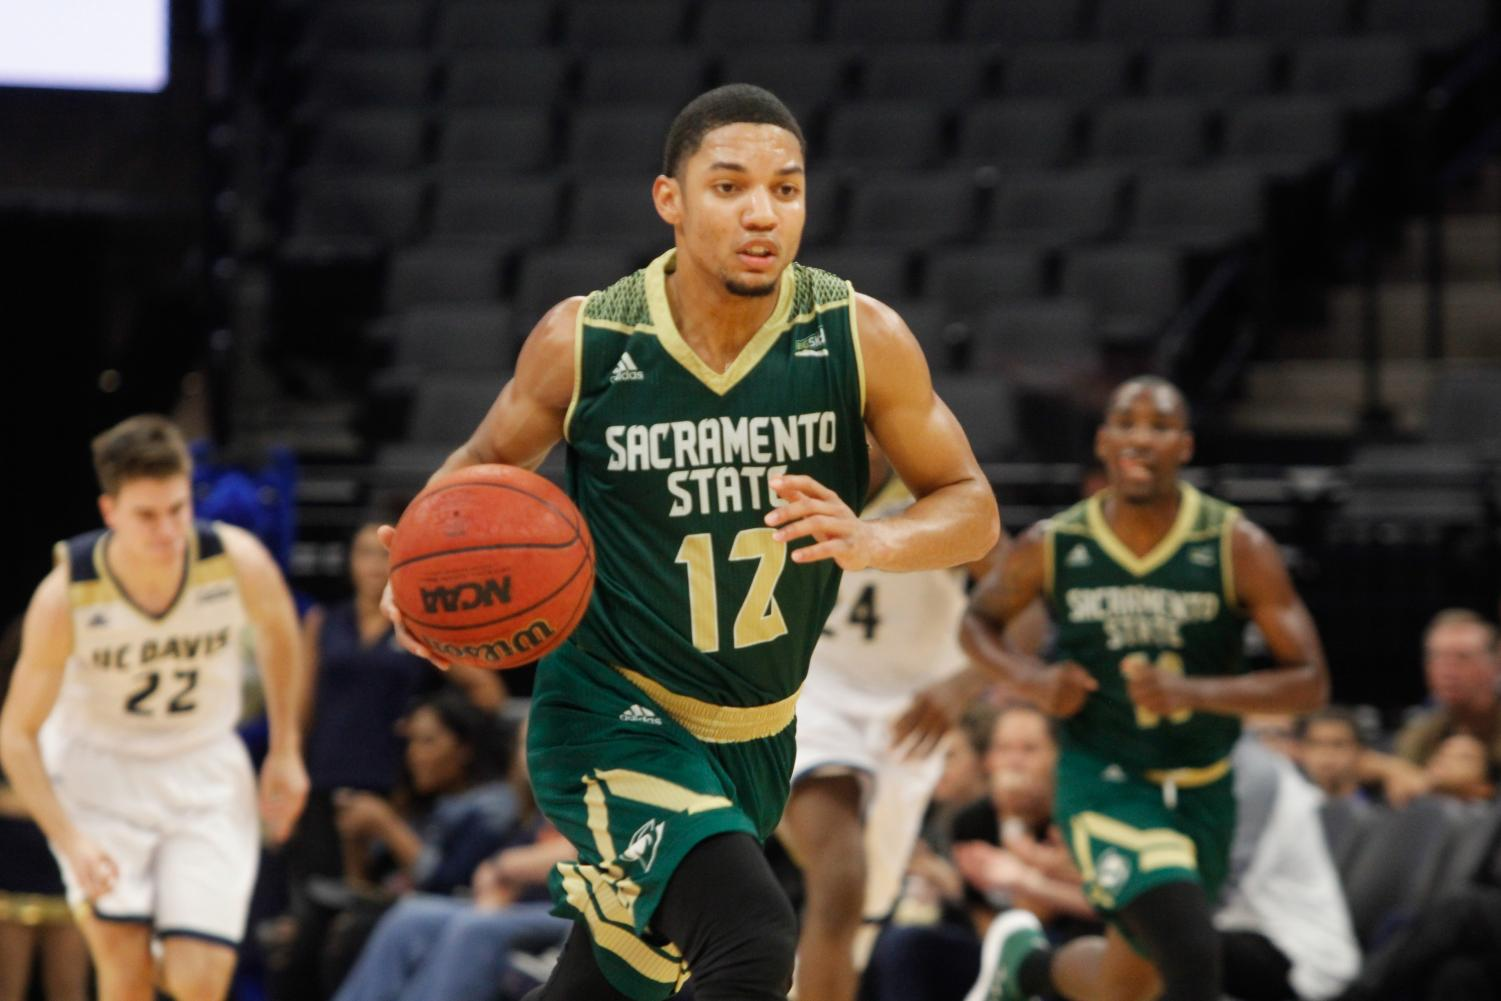 Sacramento State junior guard Jordan Tolbert dribbles the ball down the court in a 64-47 loss against UC Davis at the Golden 1 Center on Tuesday, Nov. 21, 2017.